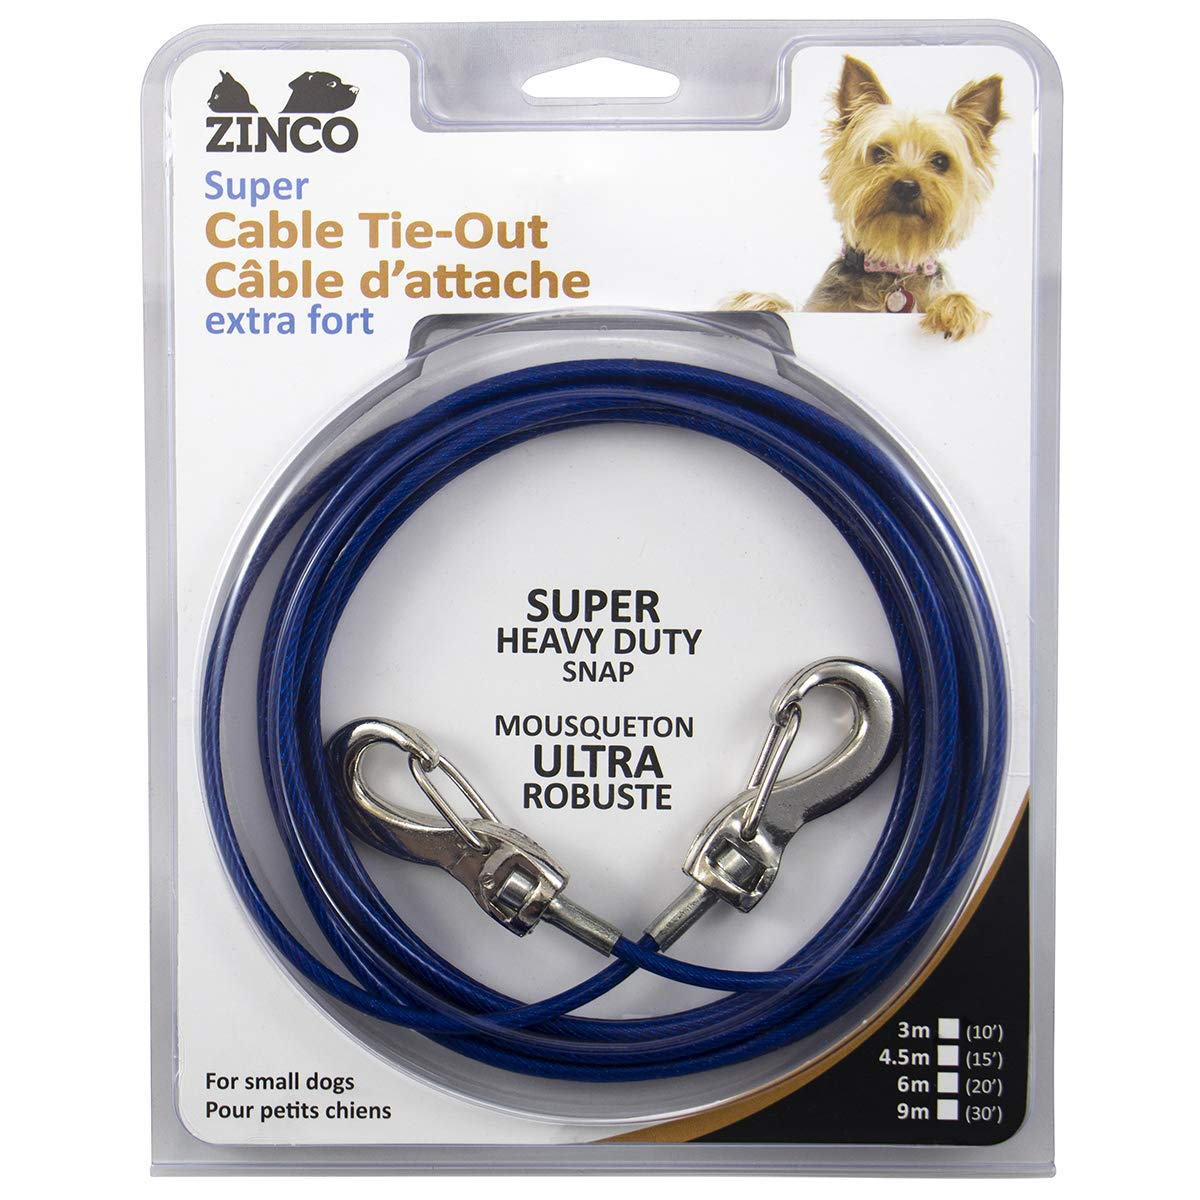 Ben-Mor Zinco Strong Tie-Out Cable 360 Degree Rotating Double Swivel Connector for Dogs